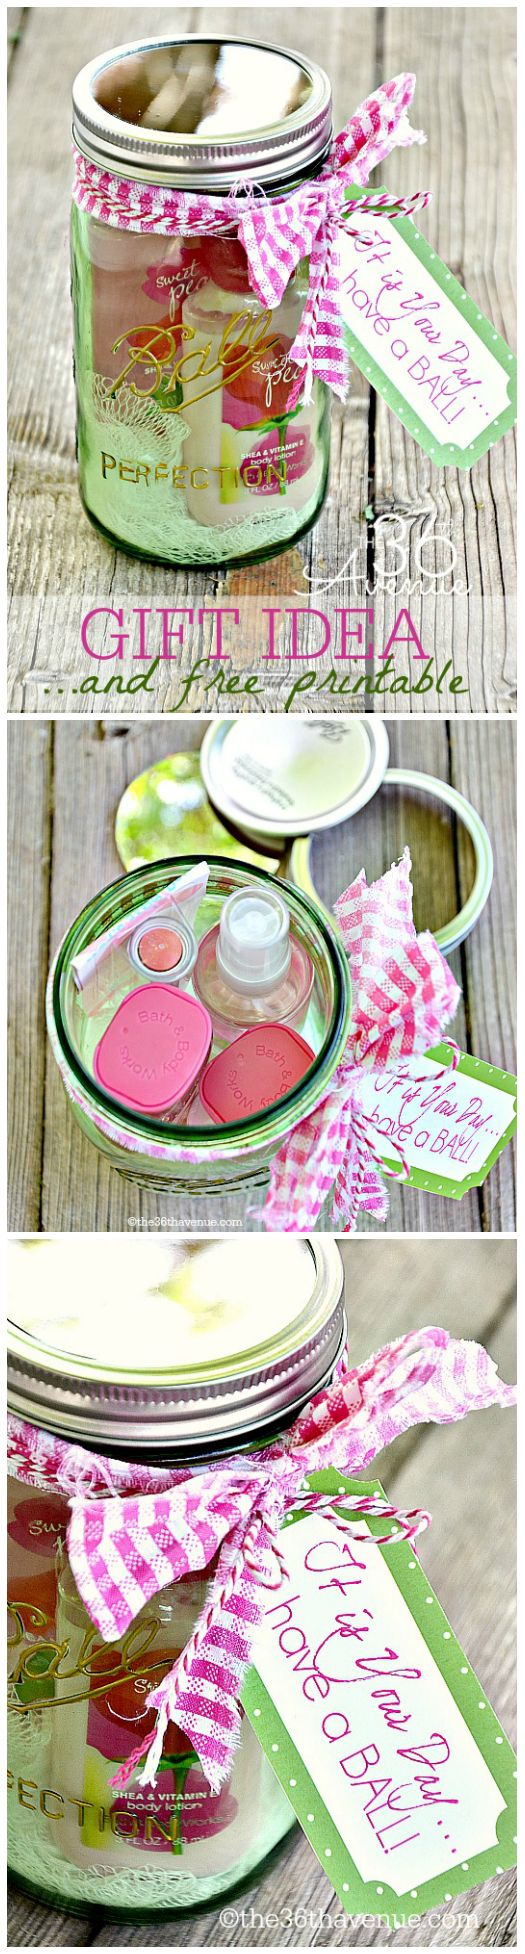 Adorable Gift Idea in a Jar and Free Printable! Perfect for Mother's Day! #yearofcelebrations